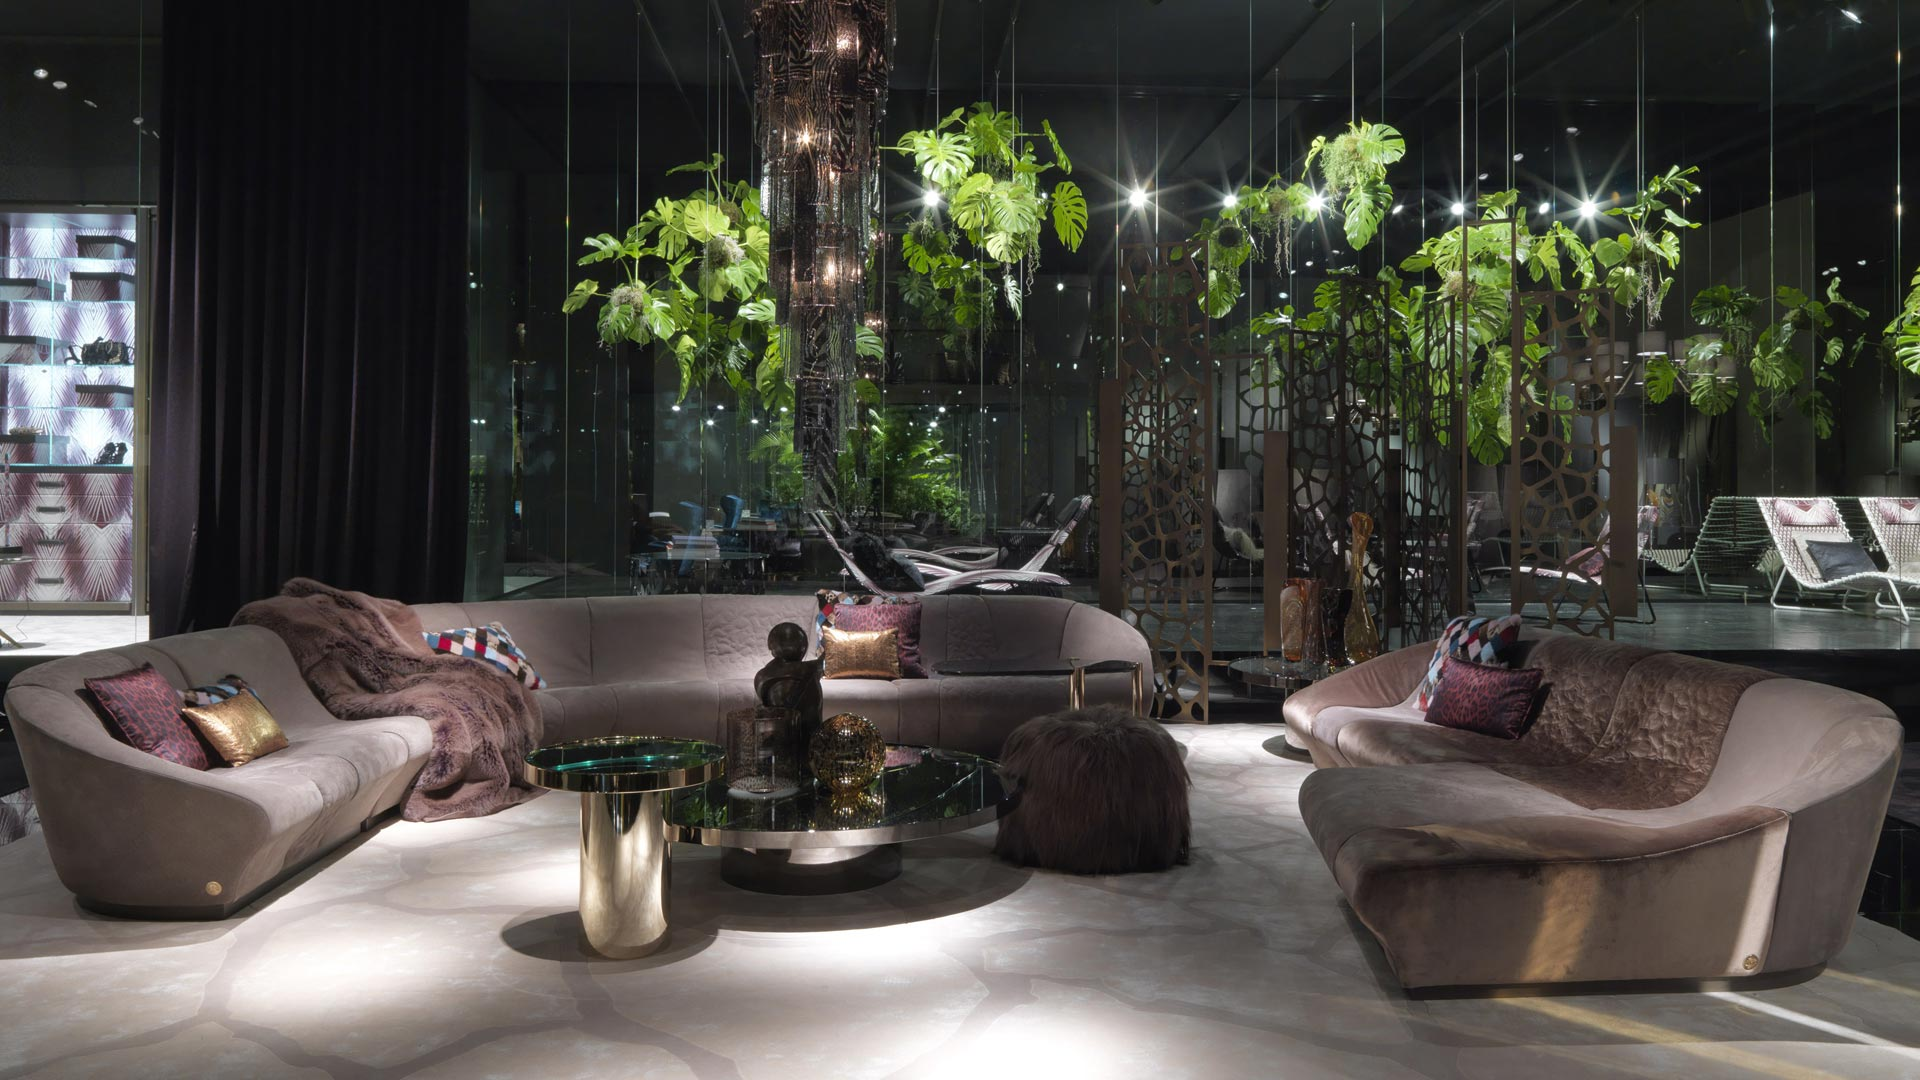 Roberto cavalli home interiors casarredo for Home interior design images